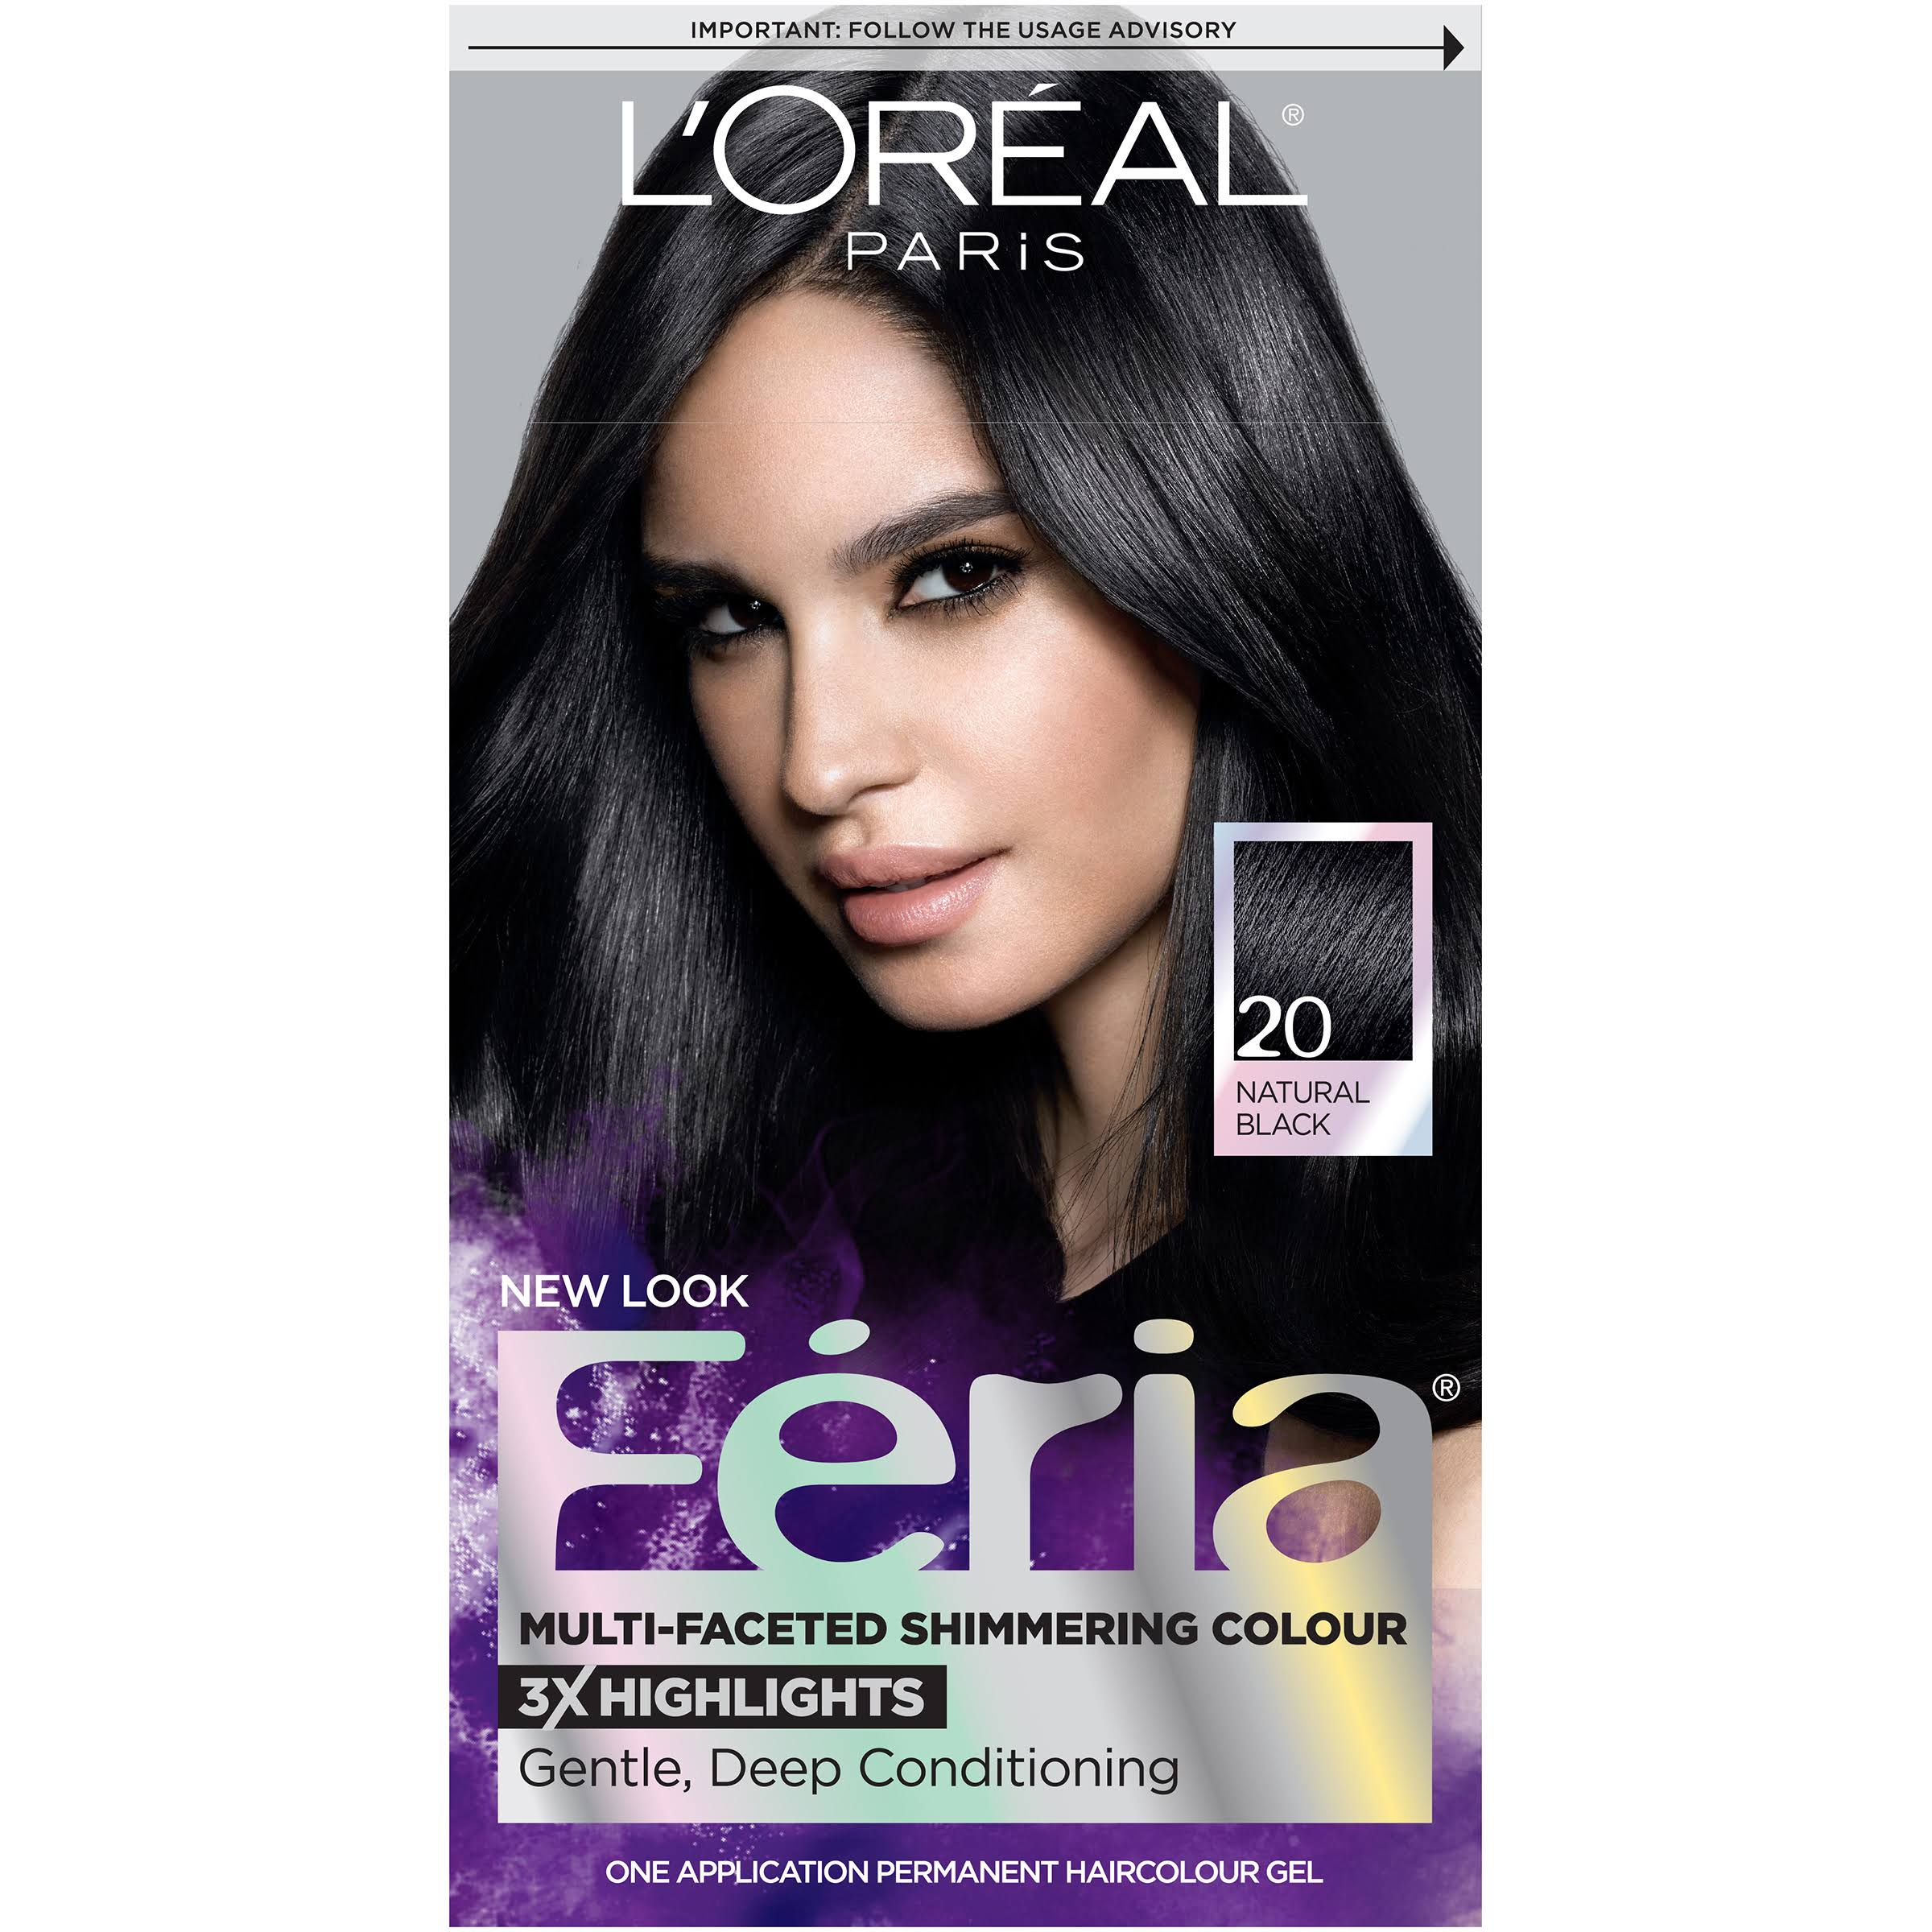 L'oreal Paris Feria Permanent Haircolour Gel - 20 Natural Black